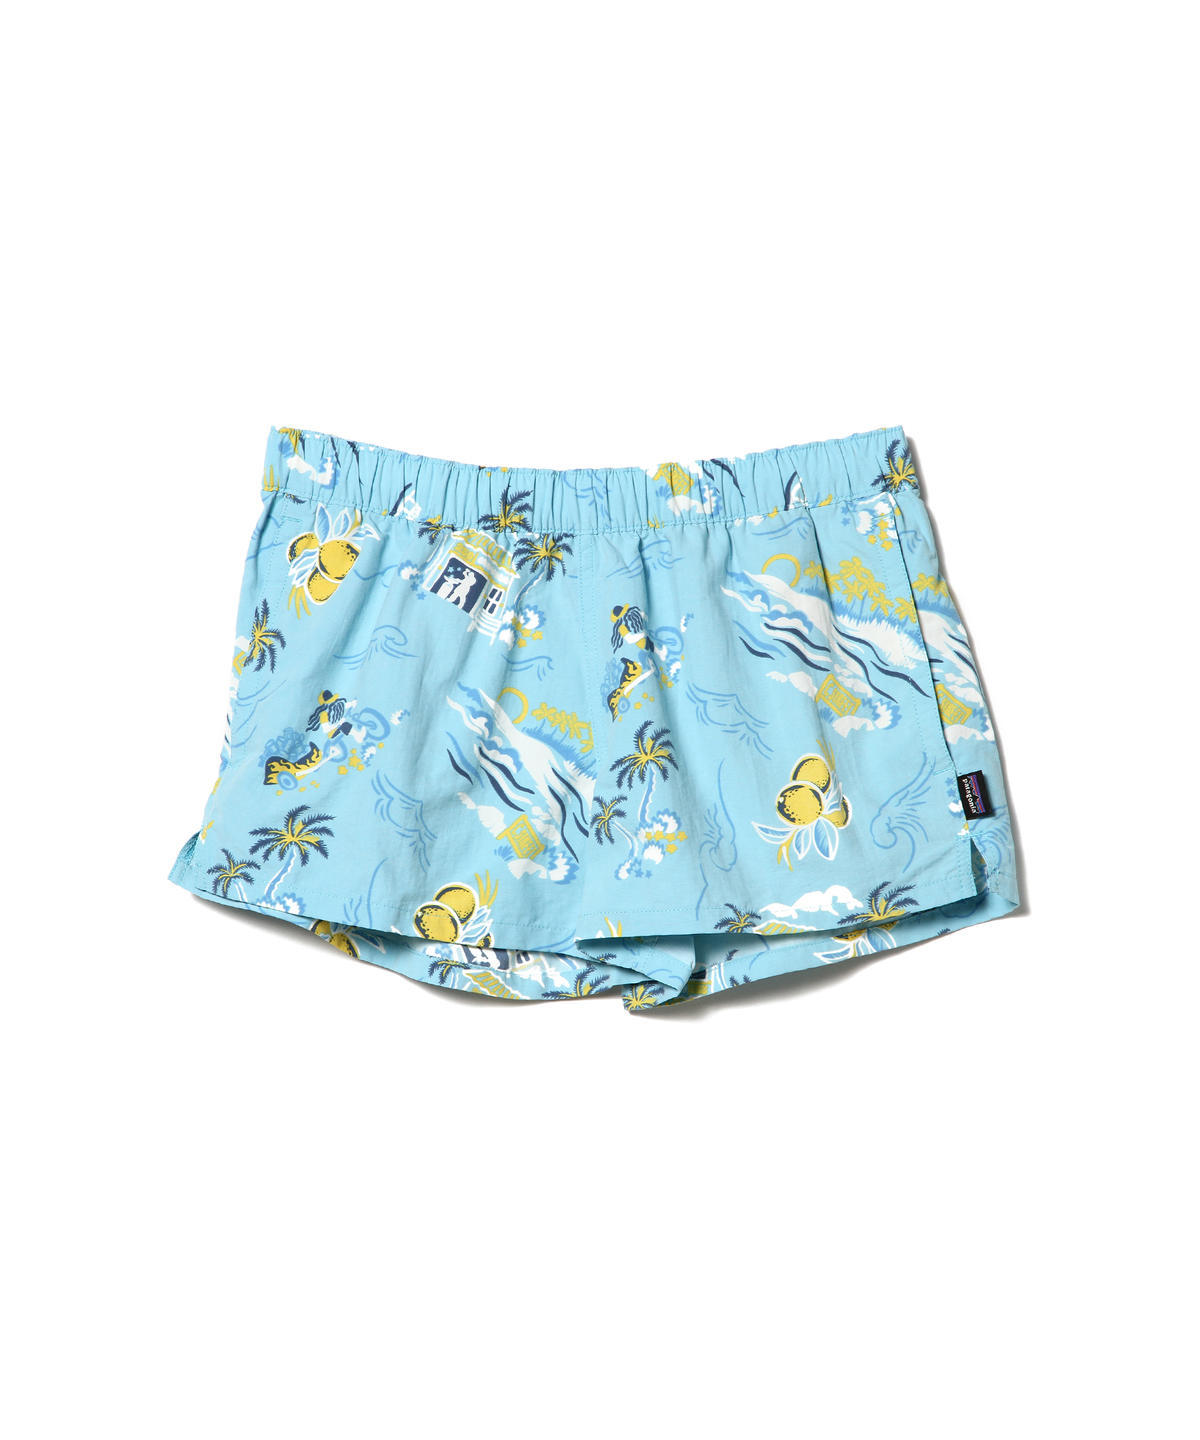 Womens Beary Baggie Short Pants